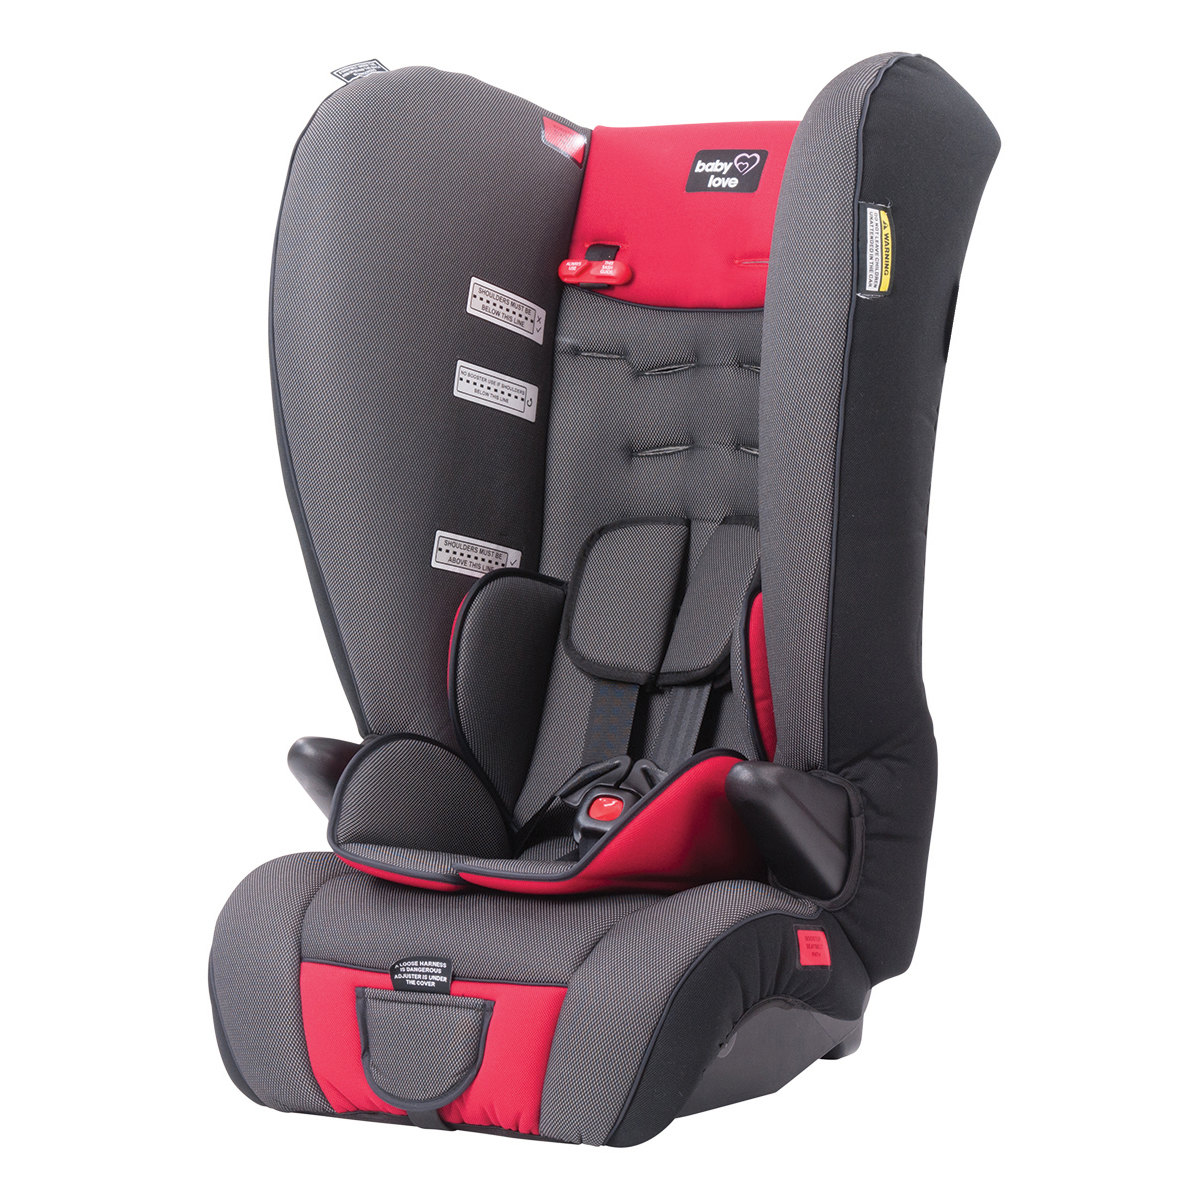 Baby Taurus II Reviews - ProductReview.com.au